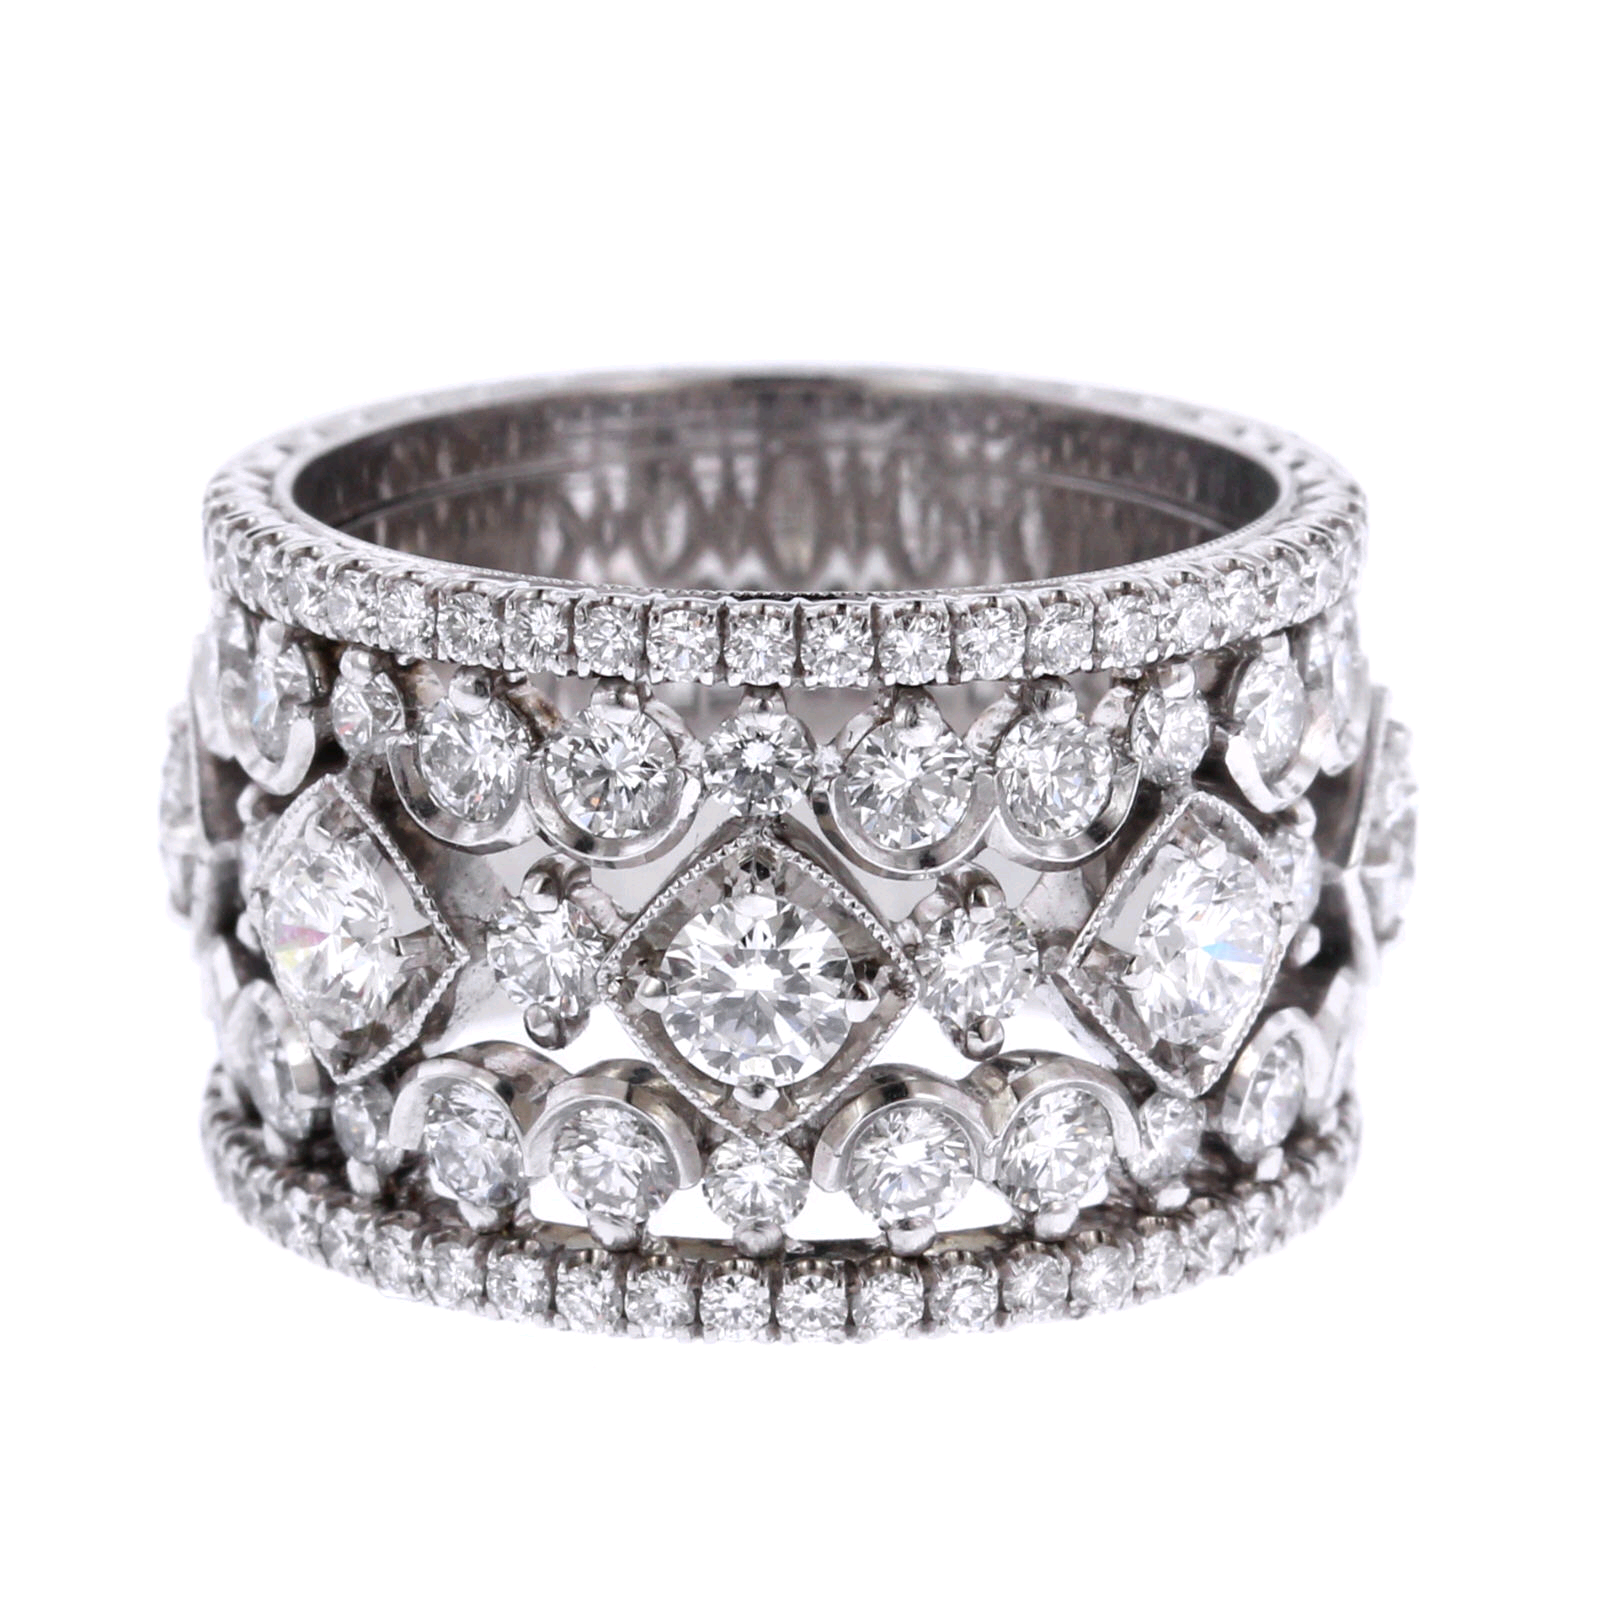 Platinum Wide Diamond Ring